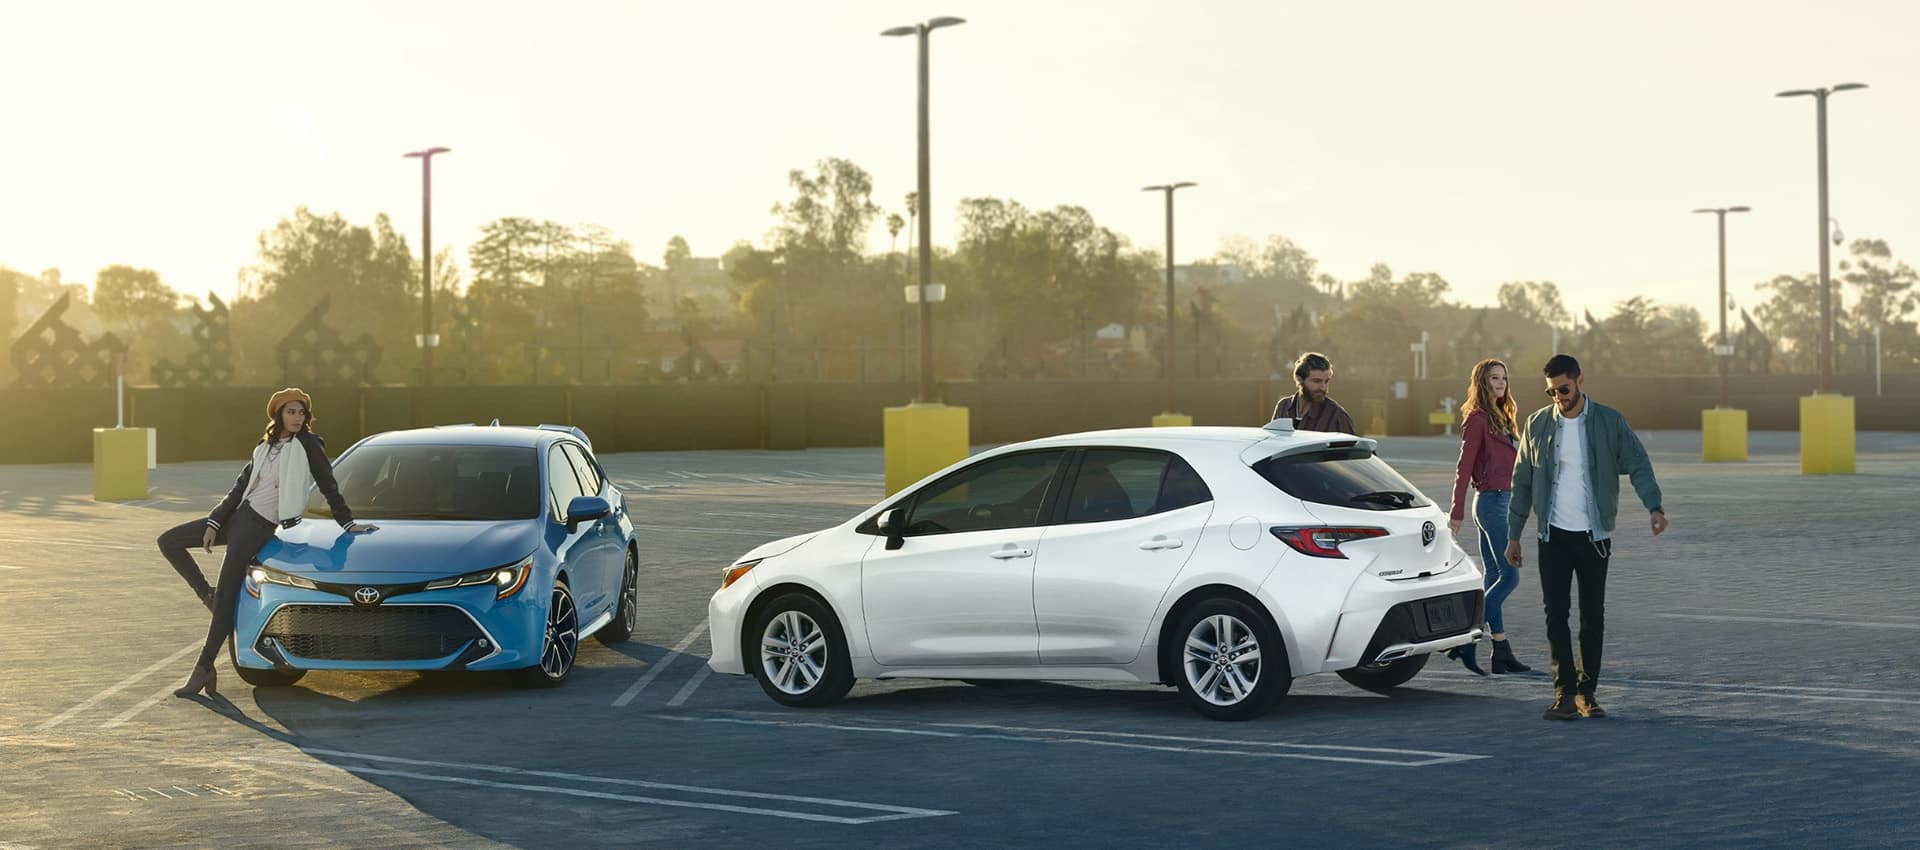 2021 Toyota Corolla Hatchback near St. Louis